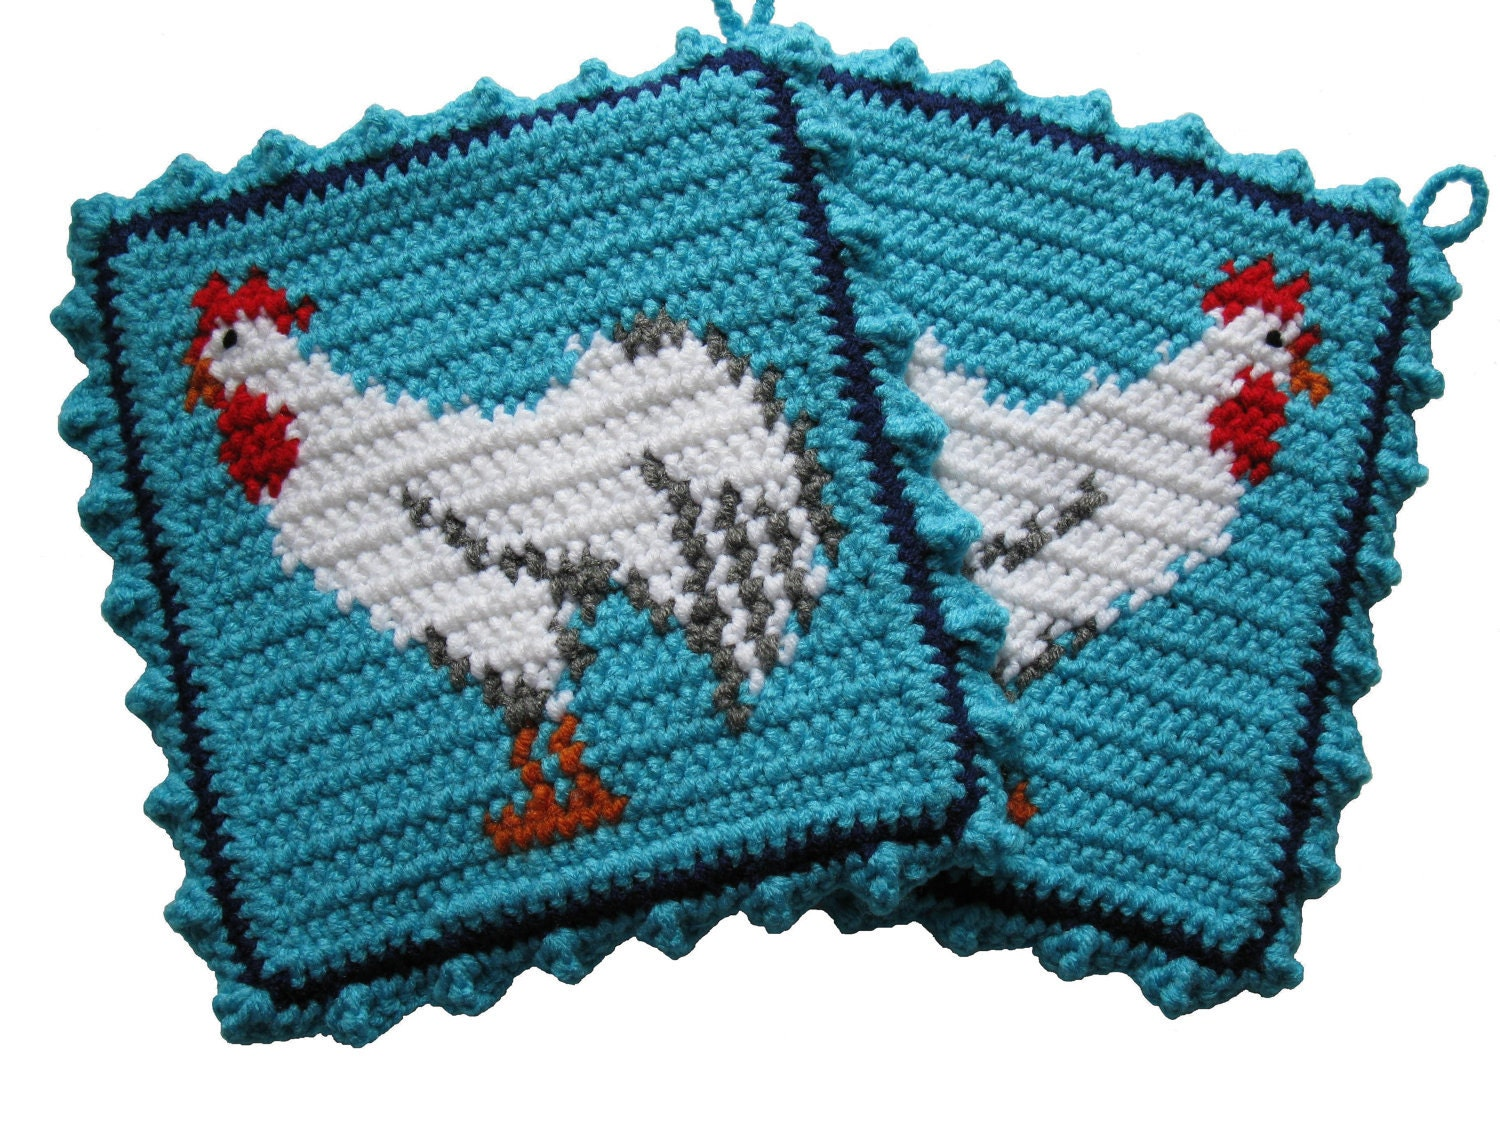 Pot Holder Knitting Pattern : Chicken Pot Holder Set. Turquoise color crochet rooster